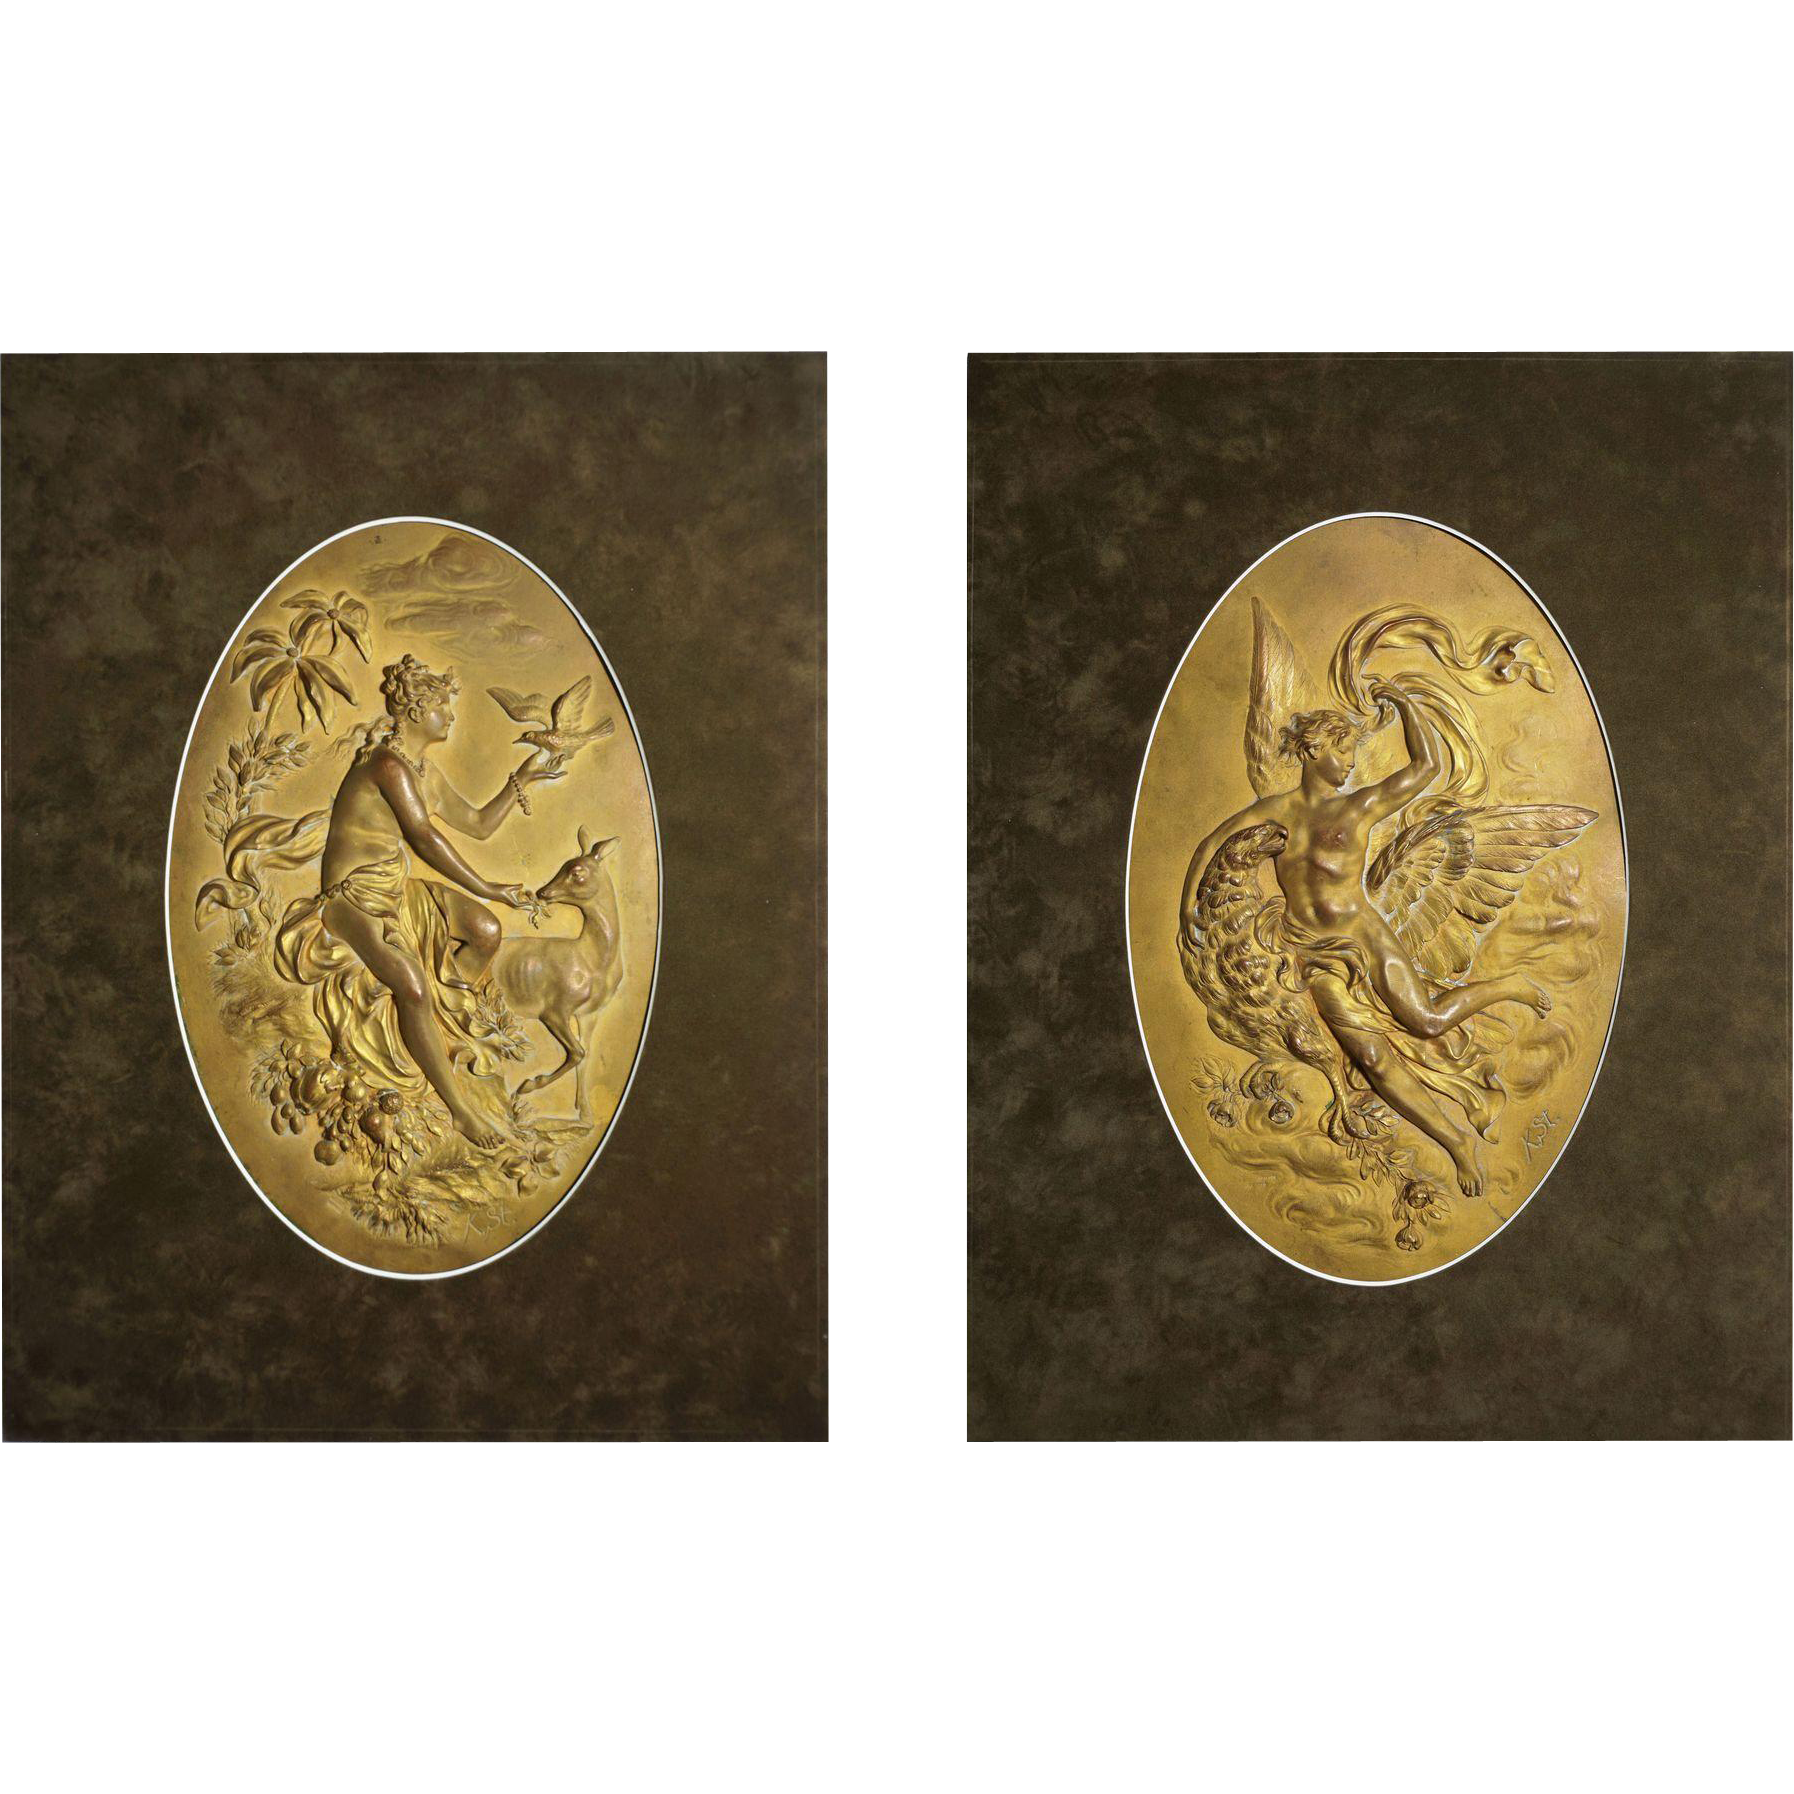 Pair of Austrian Gilt Copper Relief Wall Plaques Mythology Allegorical Signed by Artist Karl Sterrer - c. 1890, Austria